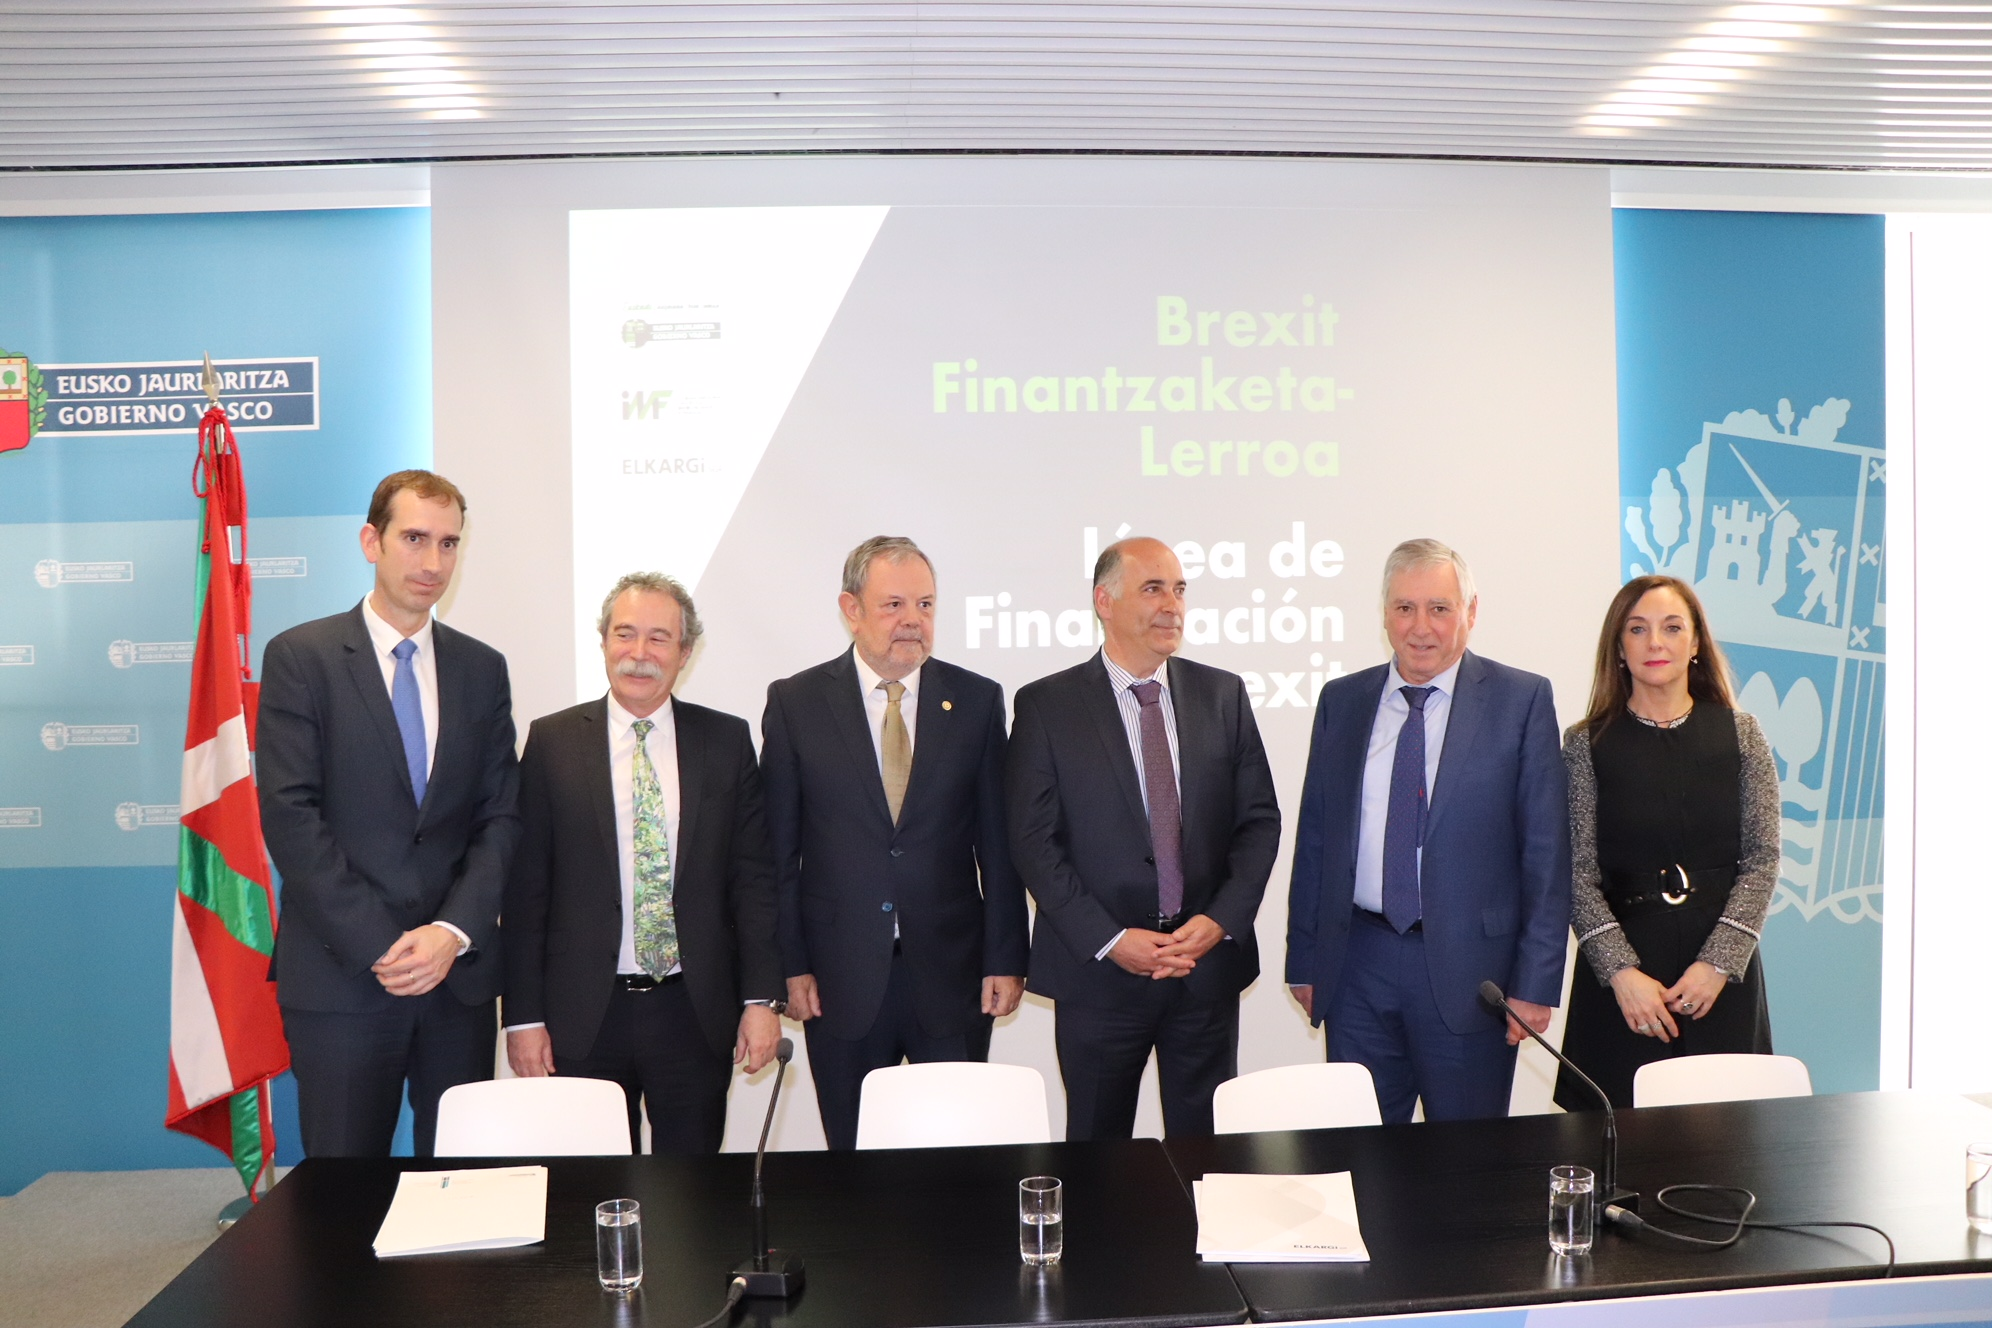 2019_02_27_azpiazu_financiacion_brexit_01.jpg